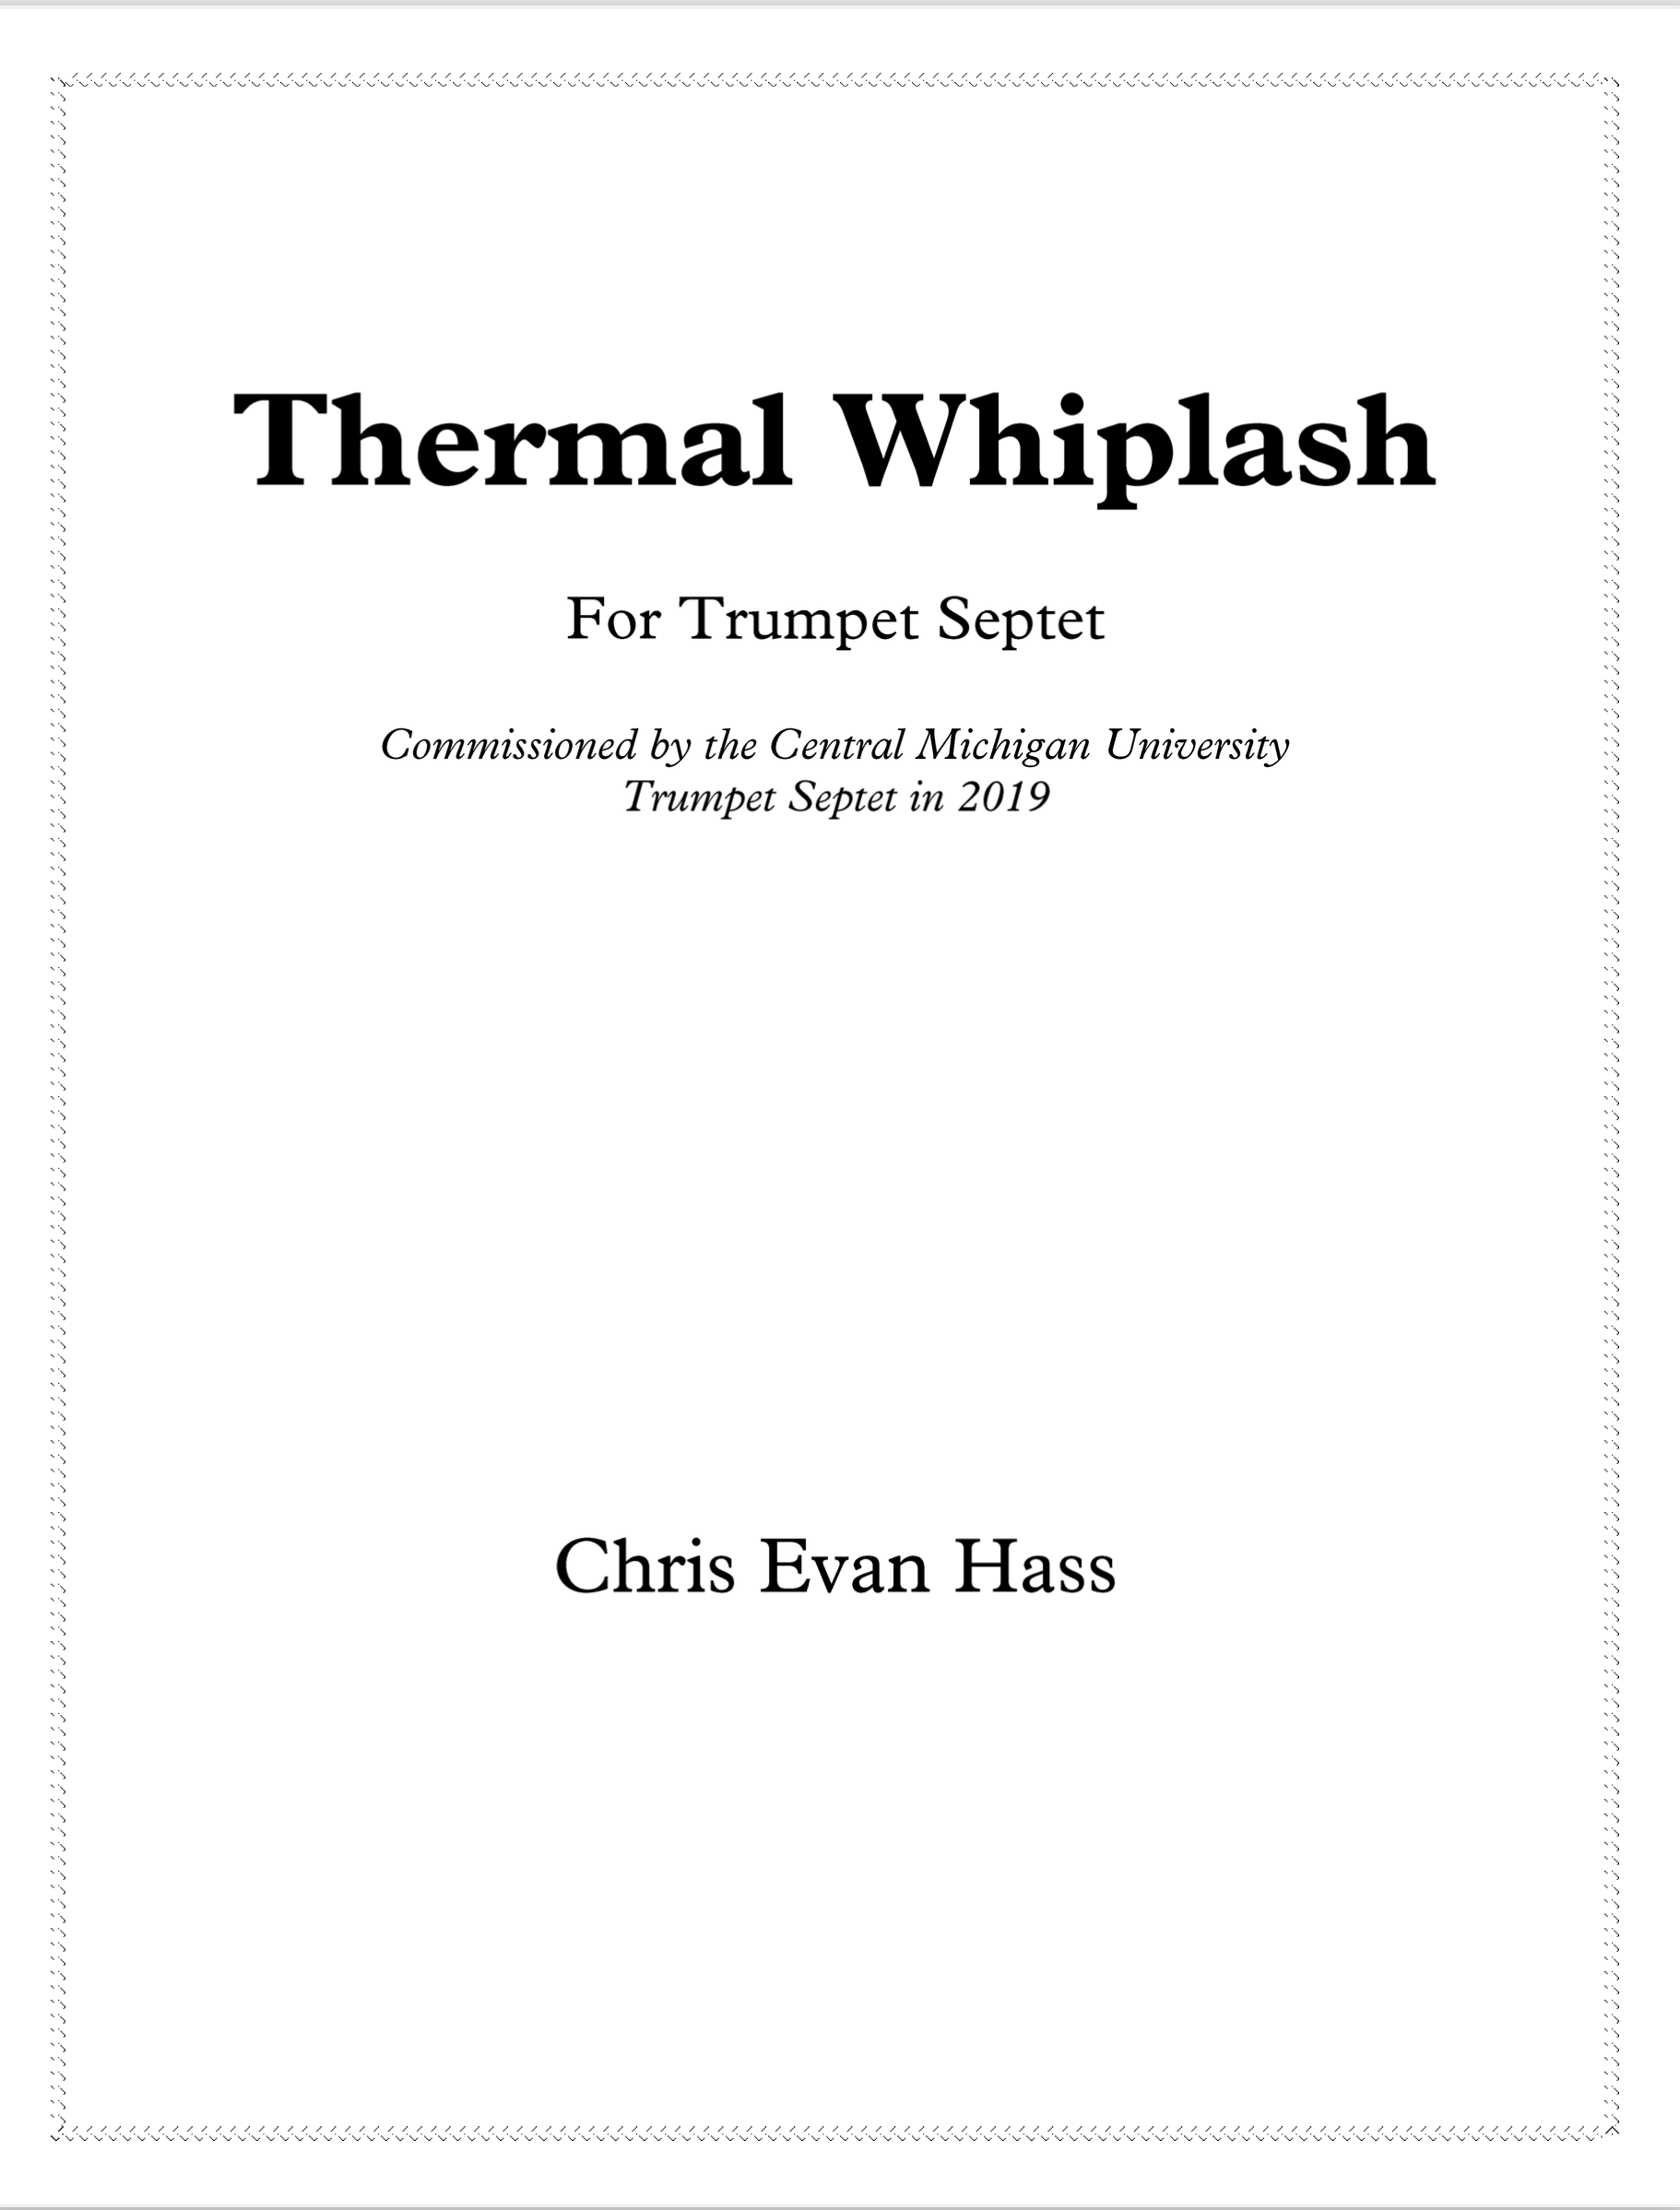 Thermal Whiplash by Chris Evan Hass